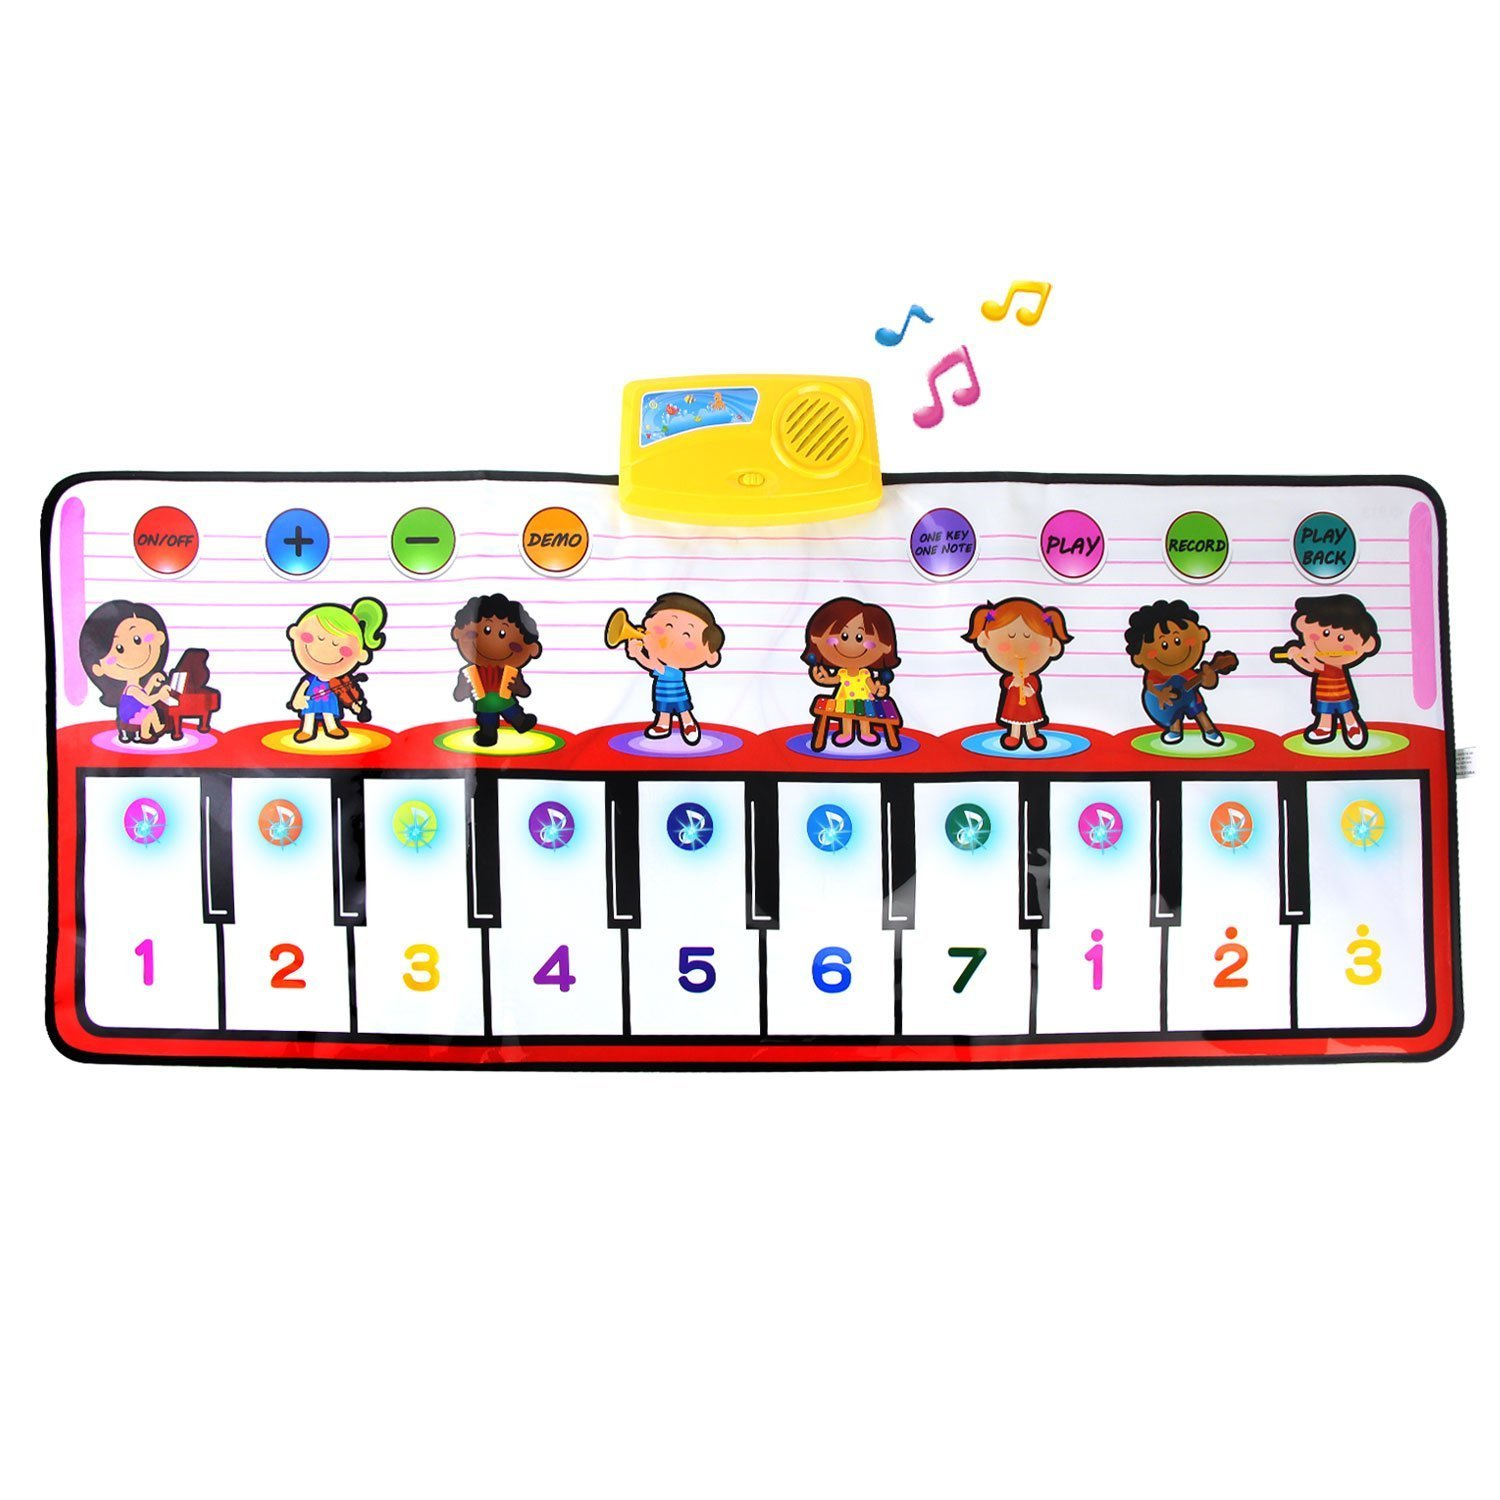 Coolplay Piano Play Music Mat,10 key Step on Keyboard,8 Selectable Musical Instruments + Play -Record -Playback -Demo-mode